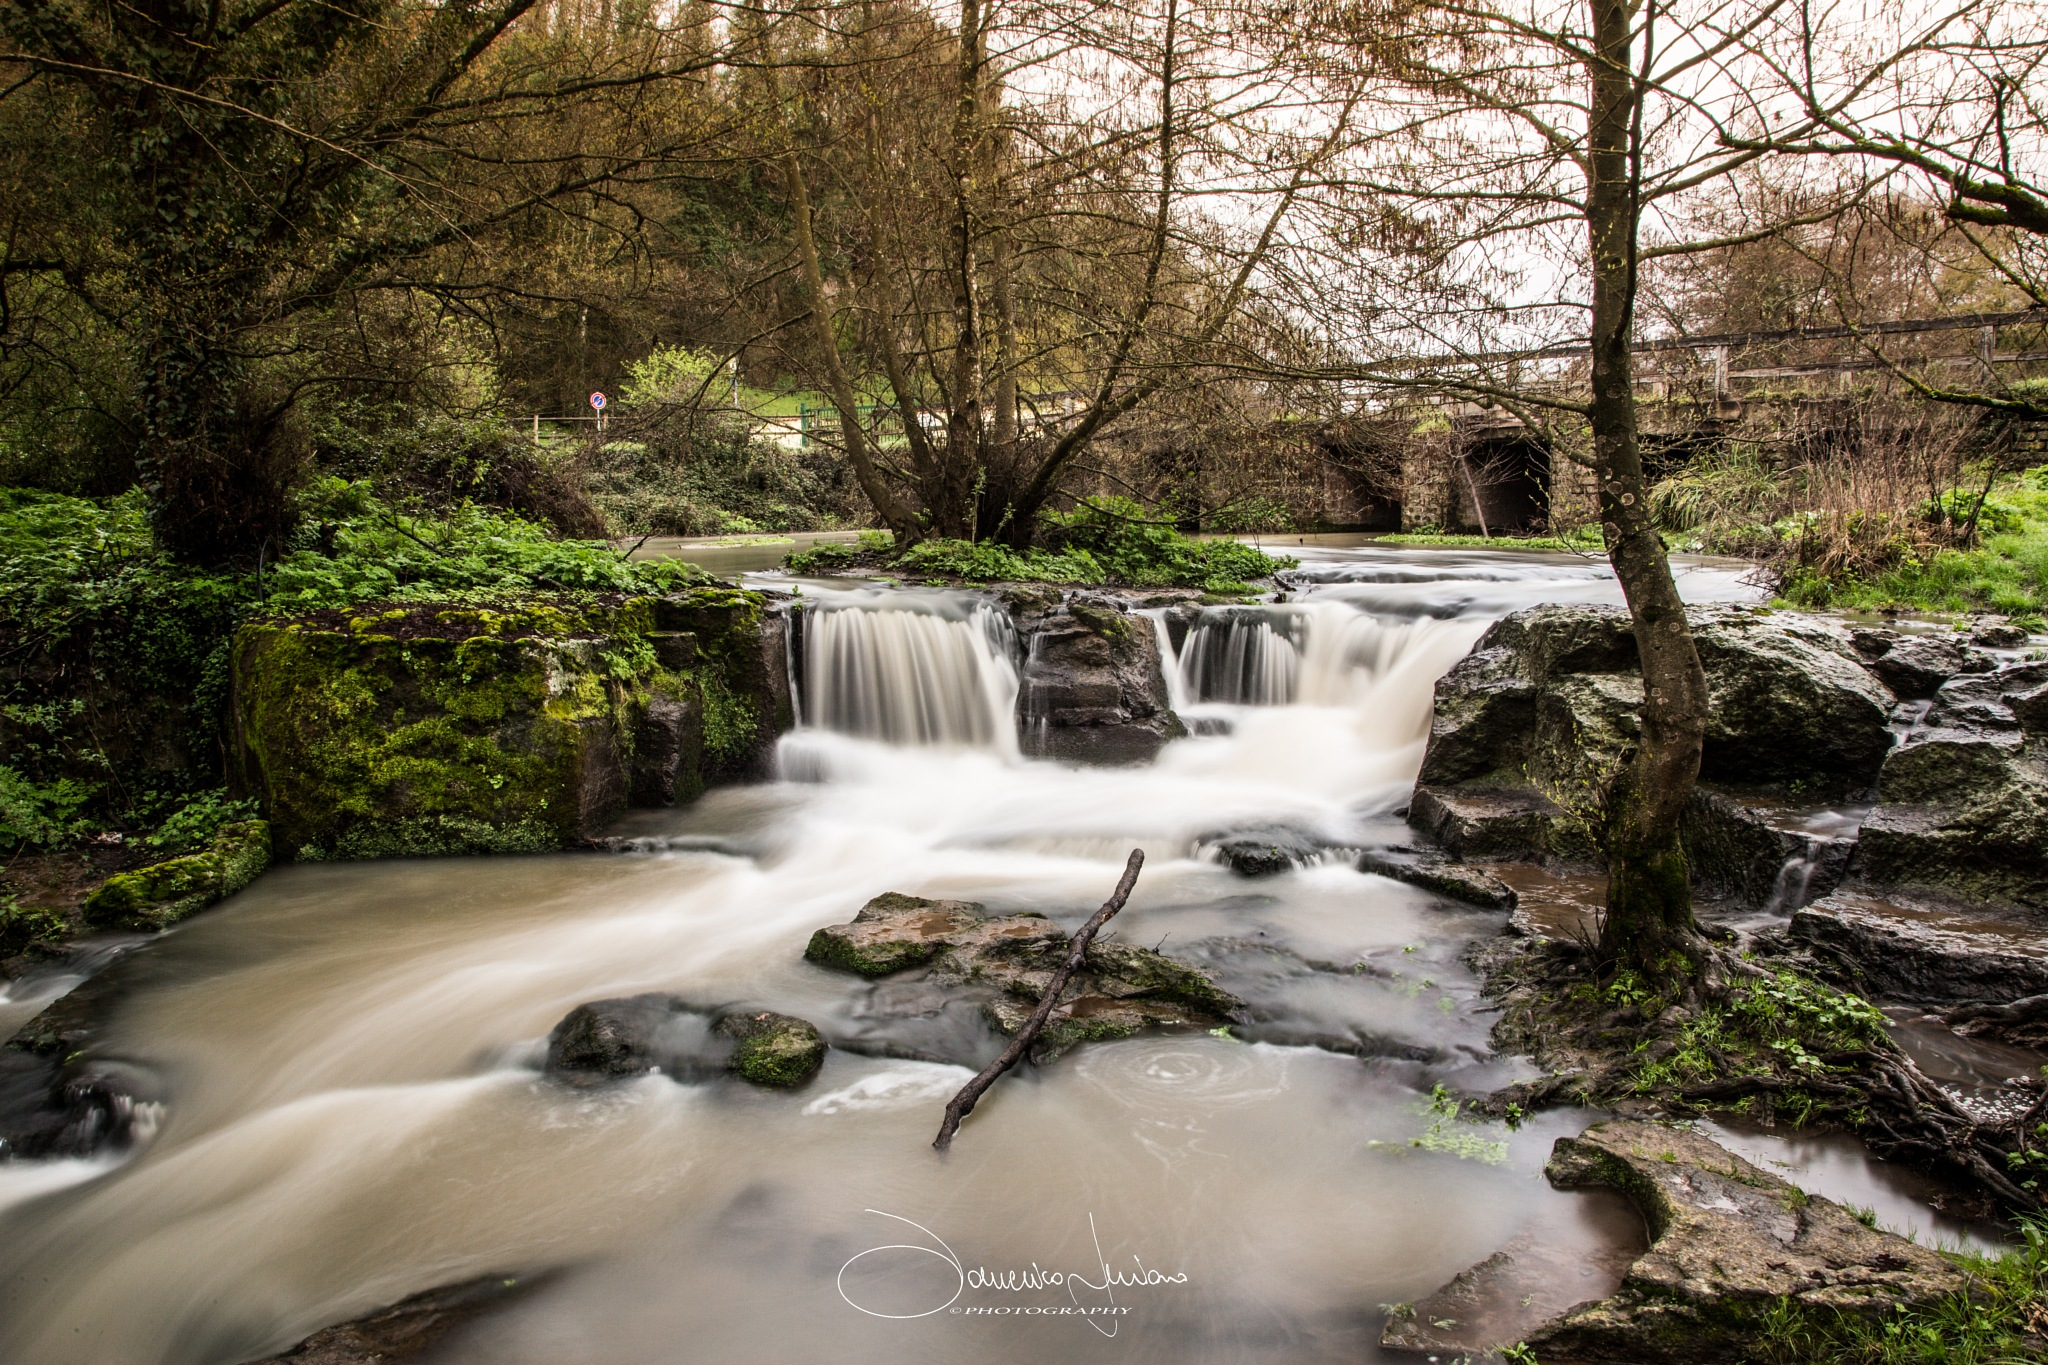 Waterfalls by Domenico Luciano Photography